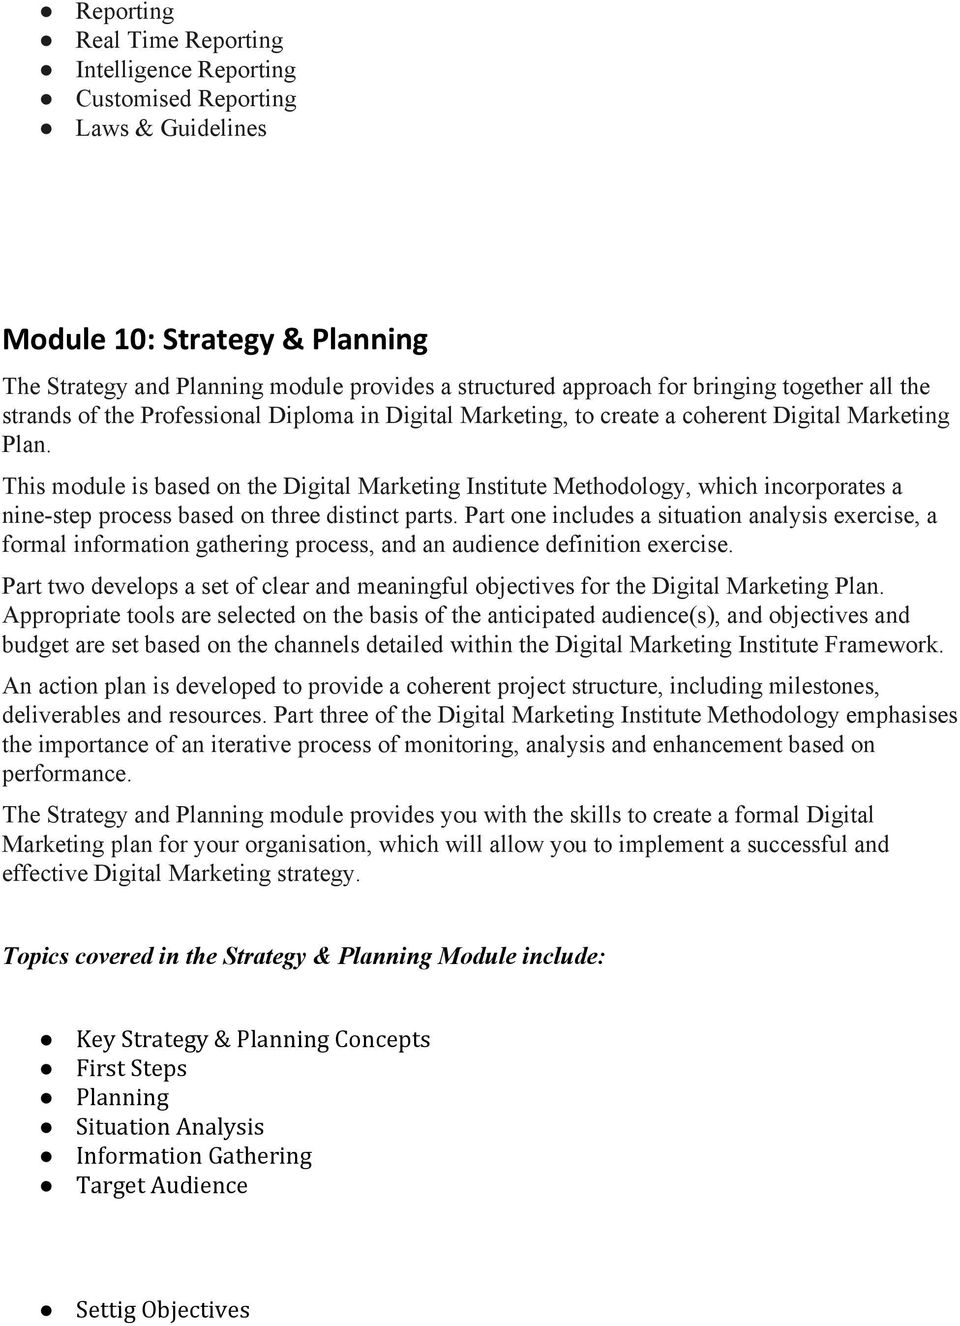 This module is based on the Digital Marketing Institute Methodology, which incorporates a nine step process based on three distinct parts.